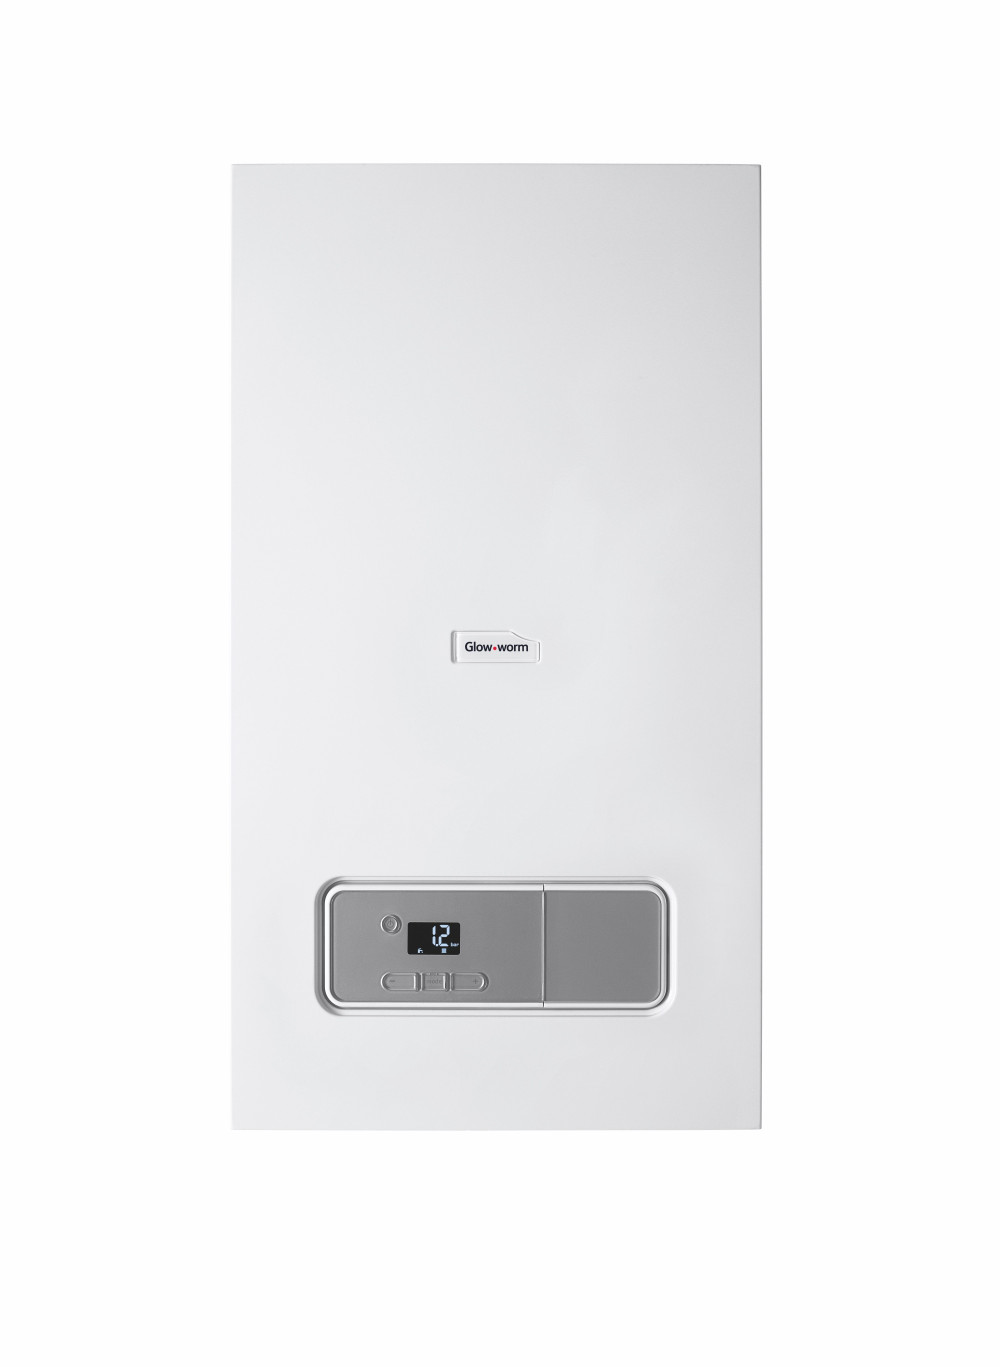 Glow-worm Energy Combi Boiler featured image